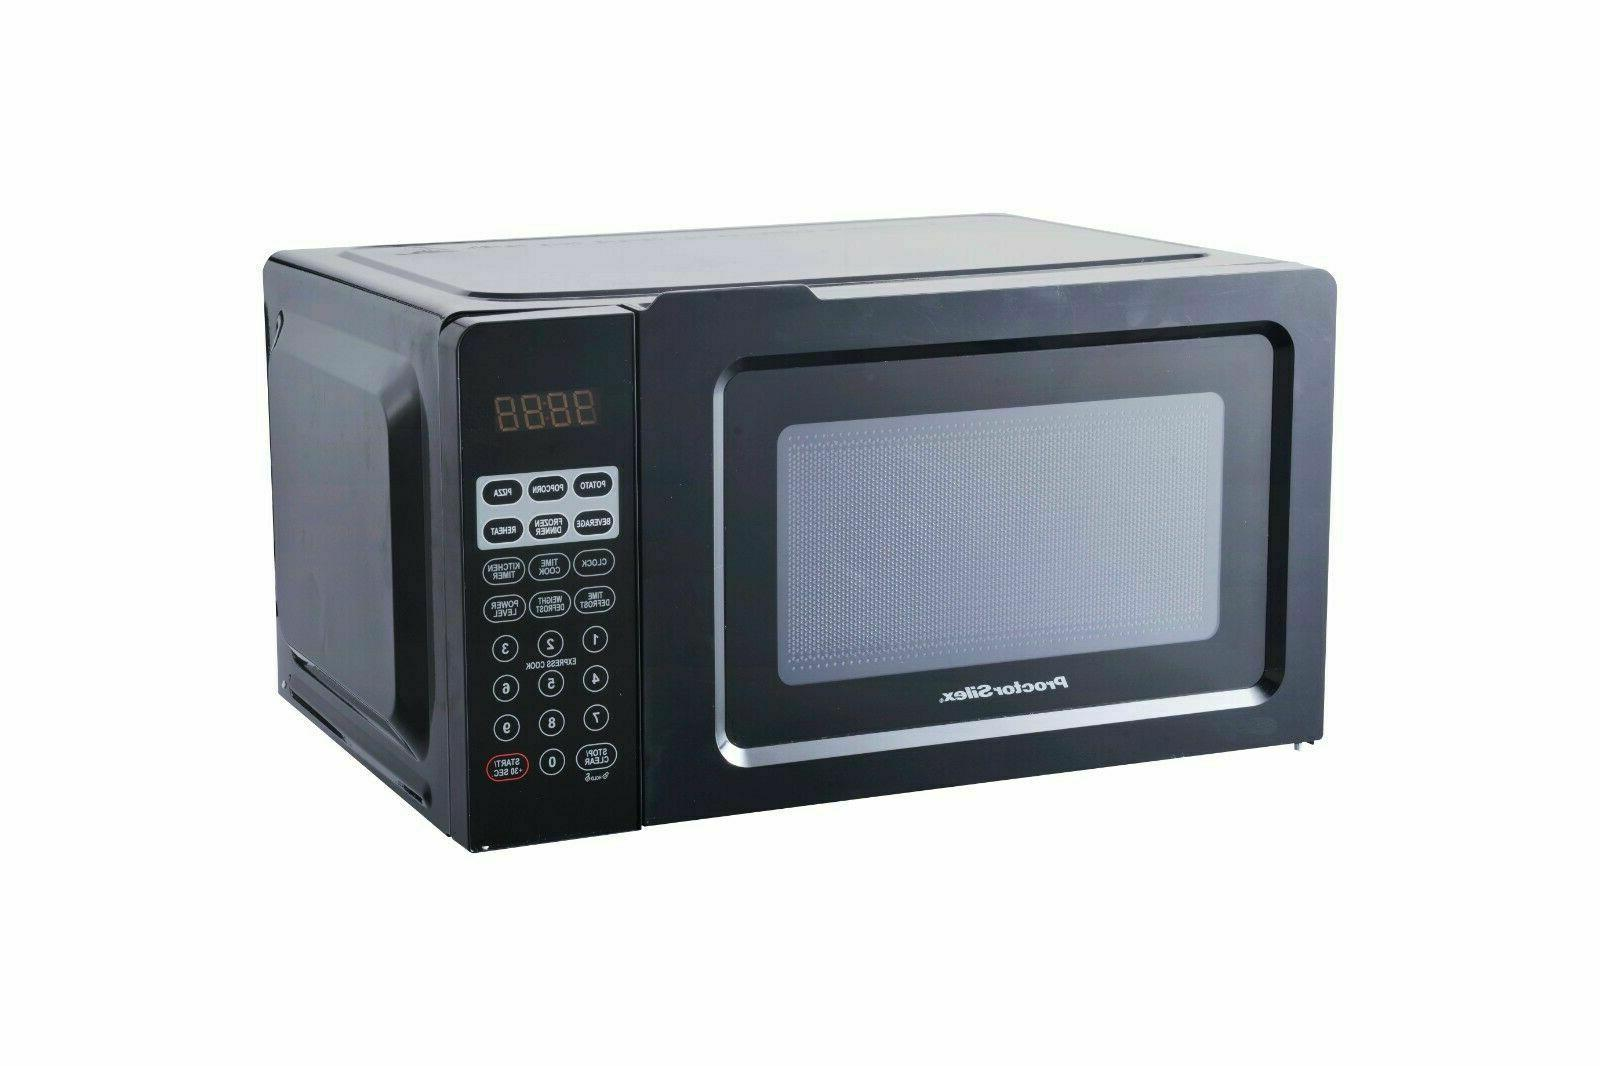 Small Table Top Digital Microwave Oven 0.7 Cu.ft Black Defro